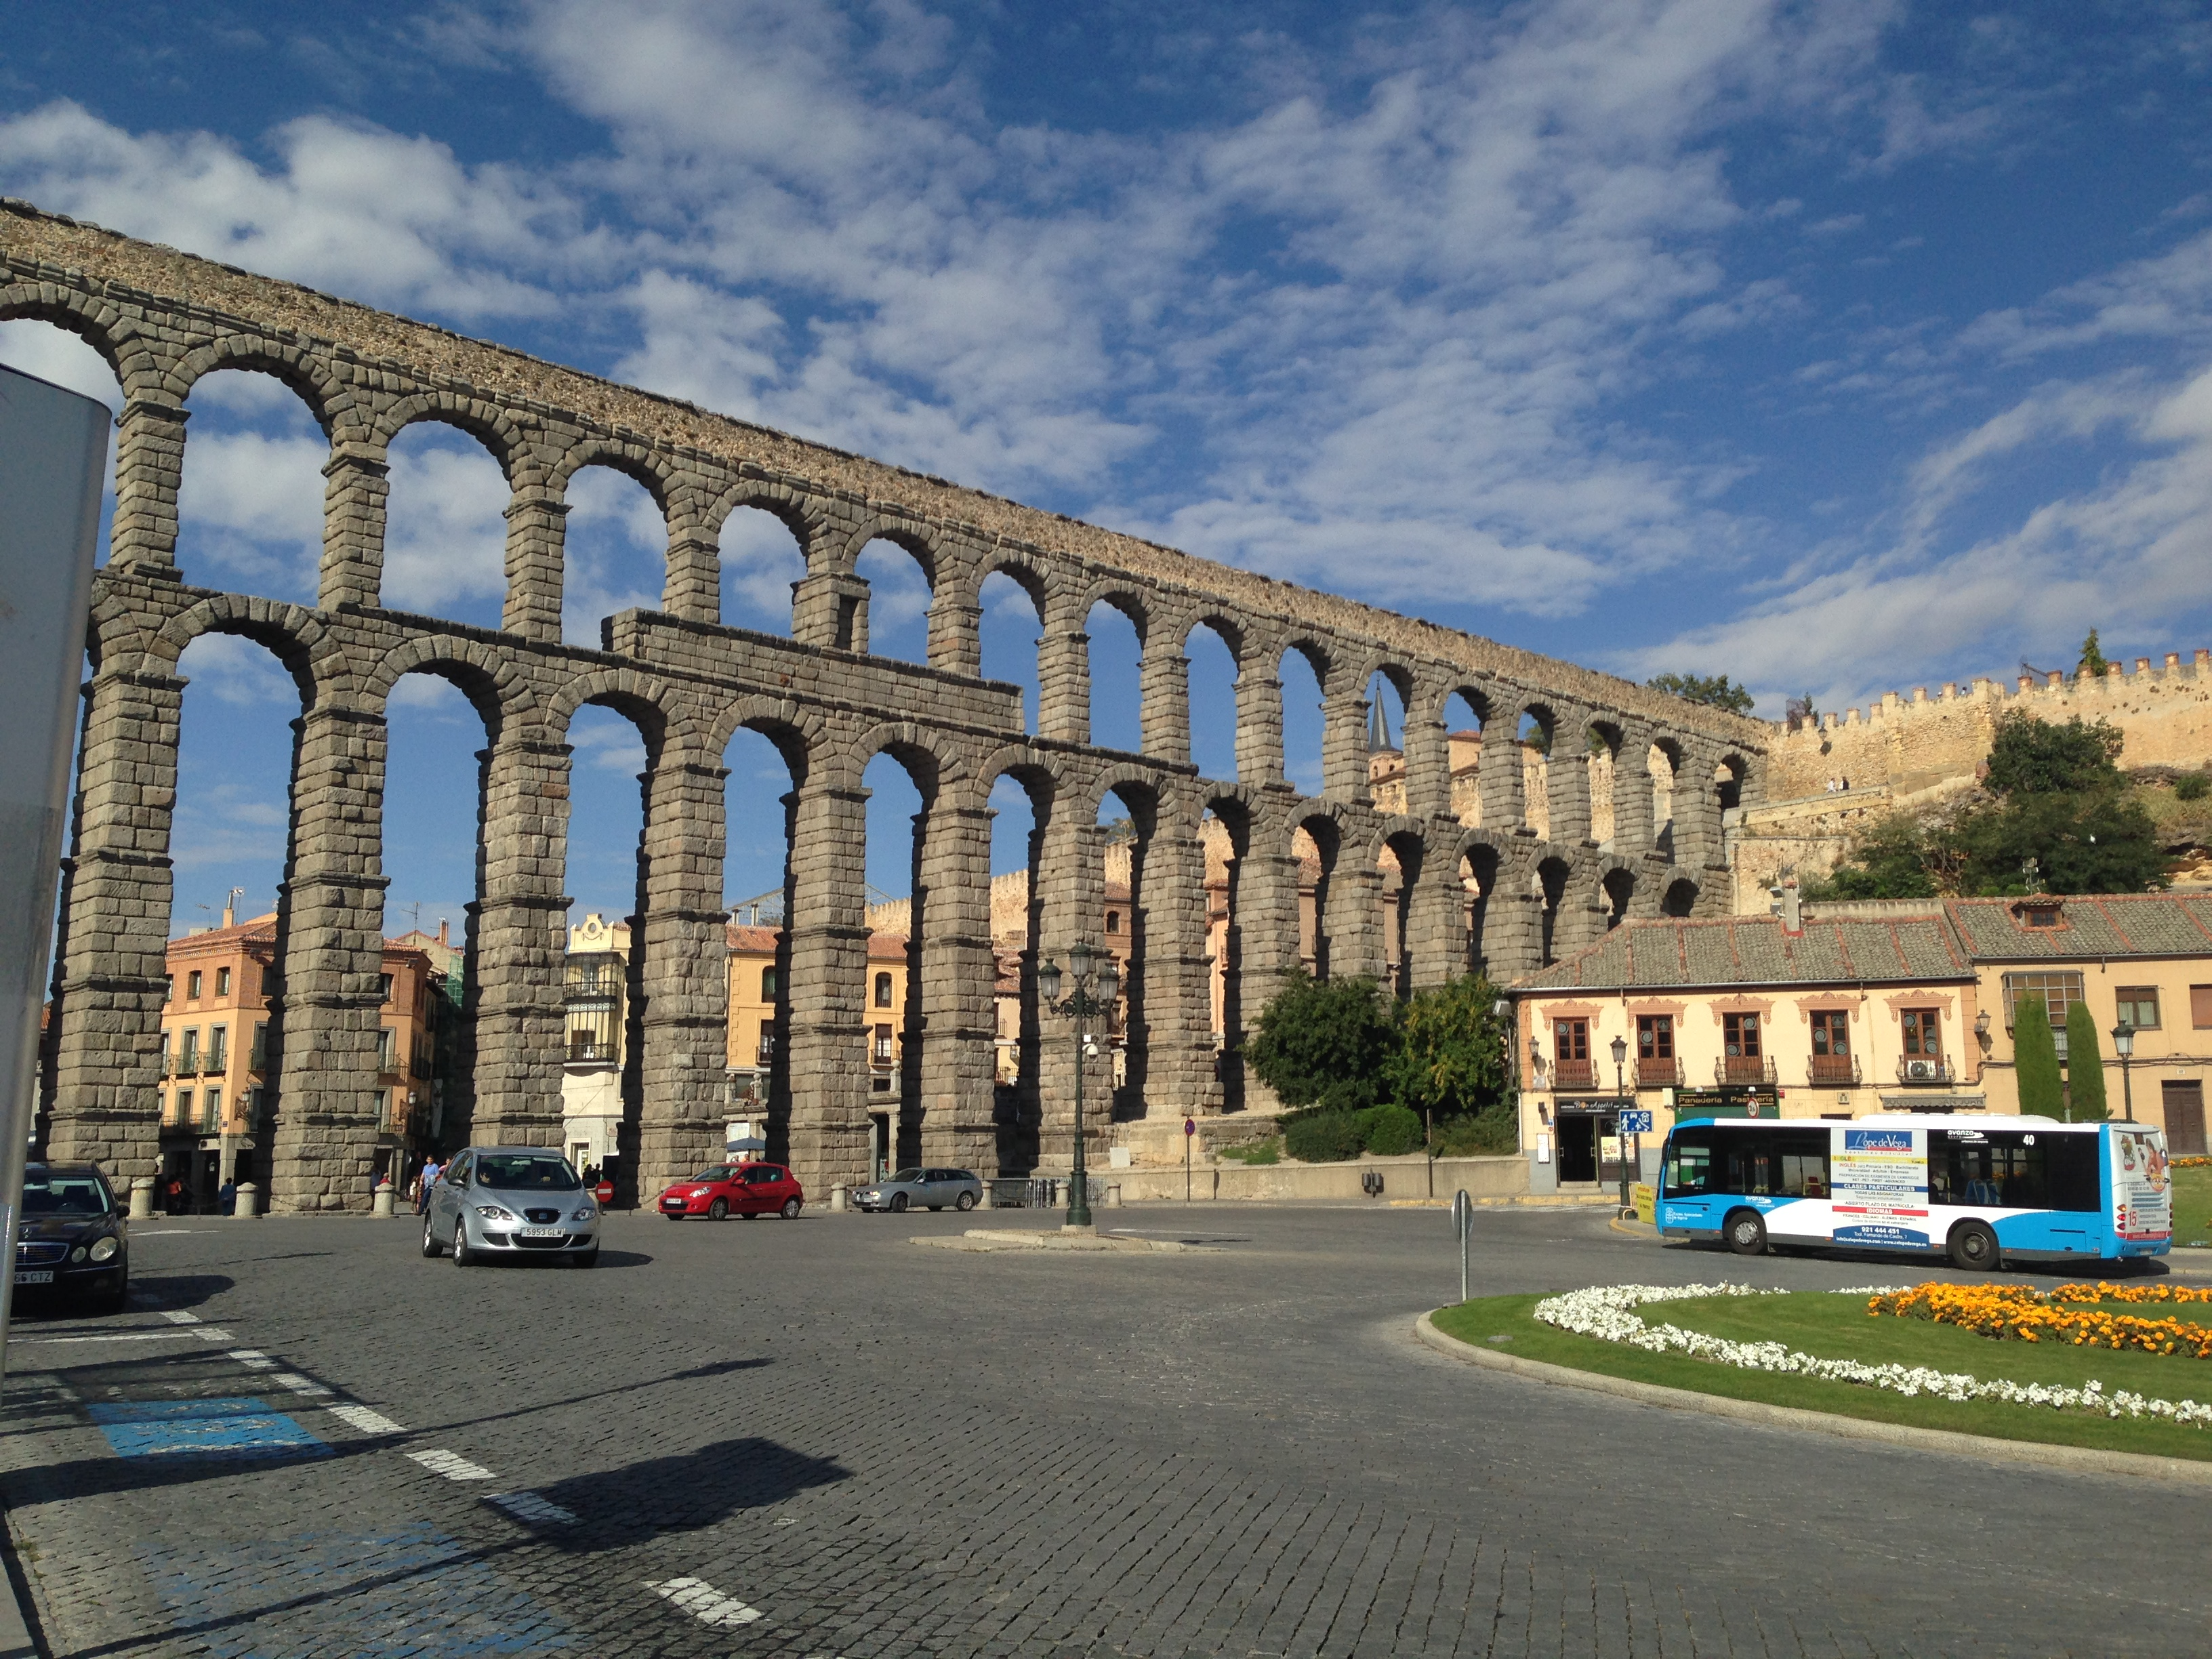 Proctor en Segovia students take local bus with aqueduct in background